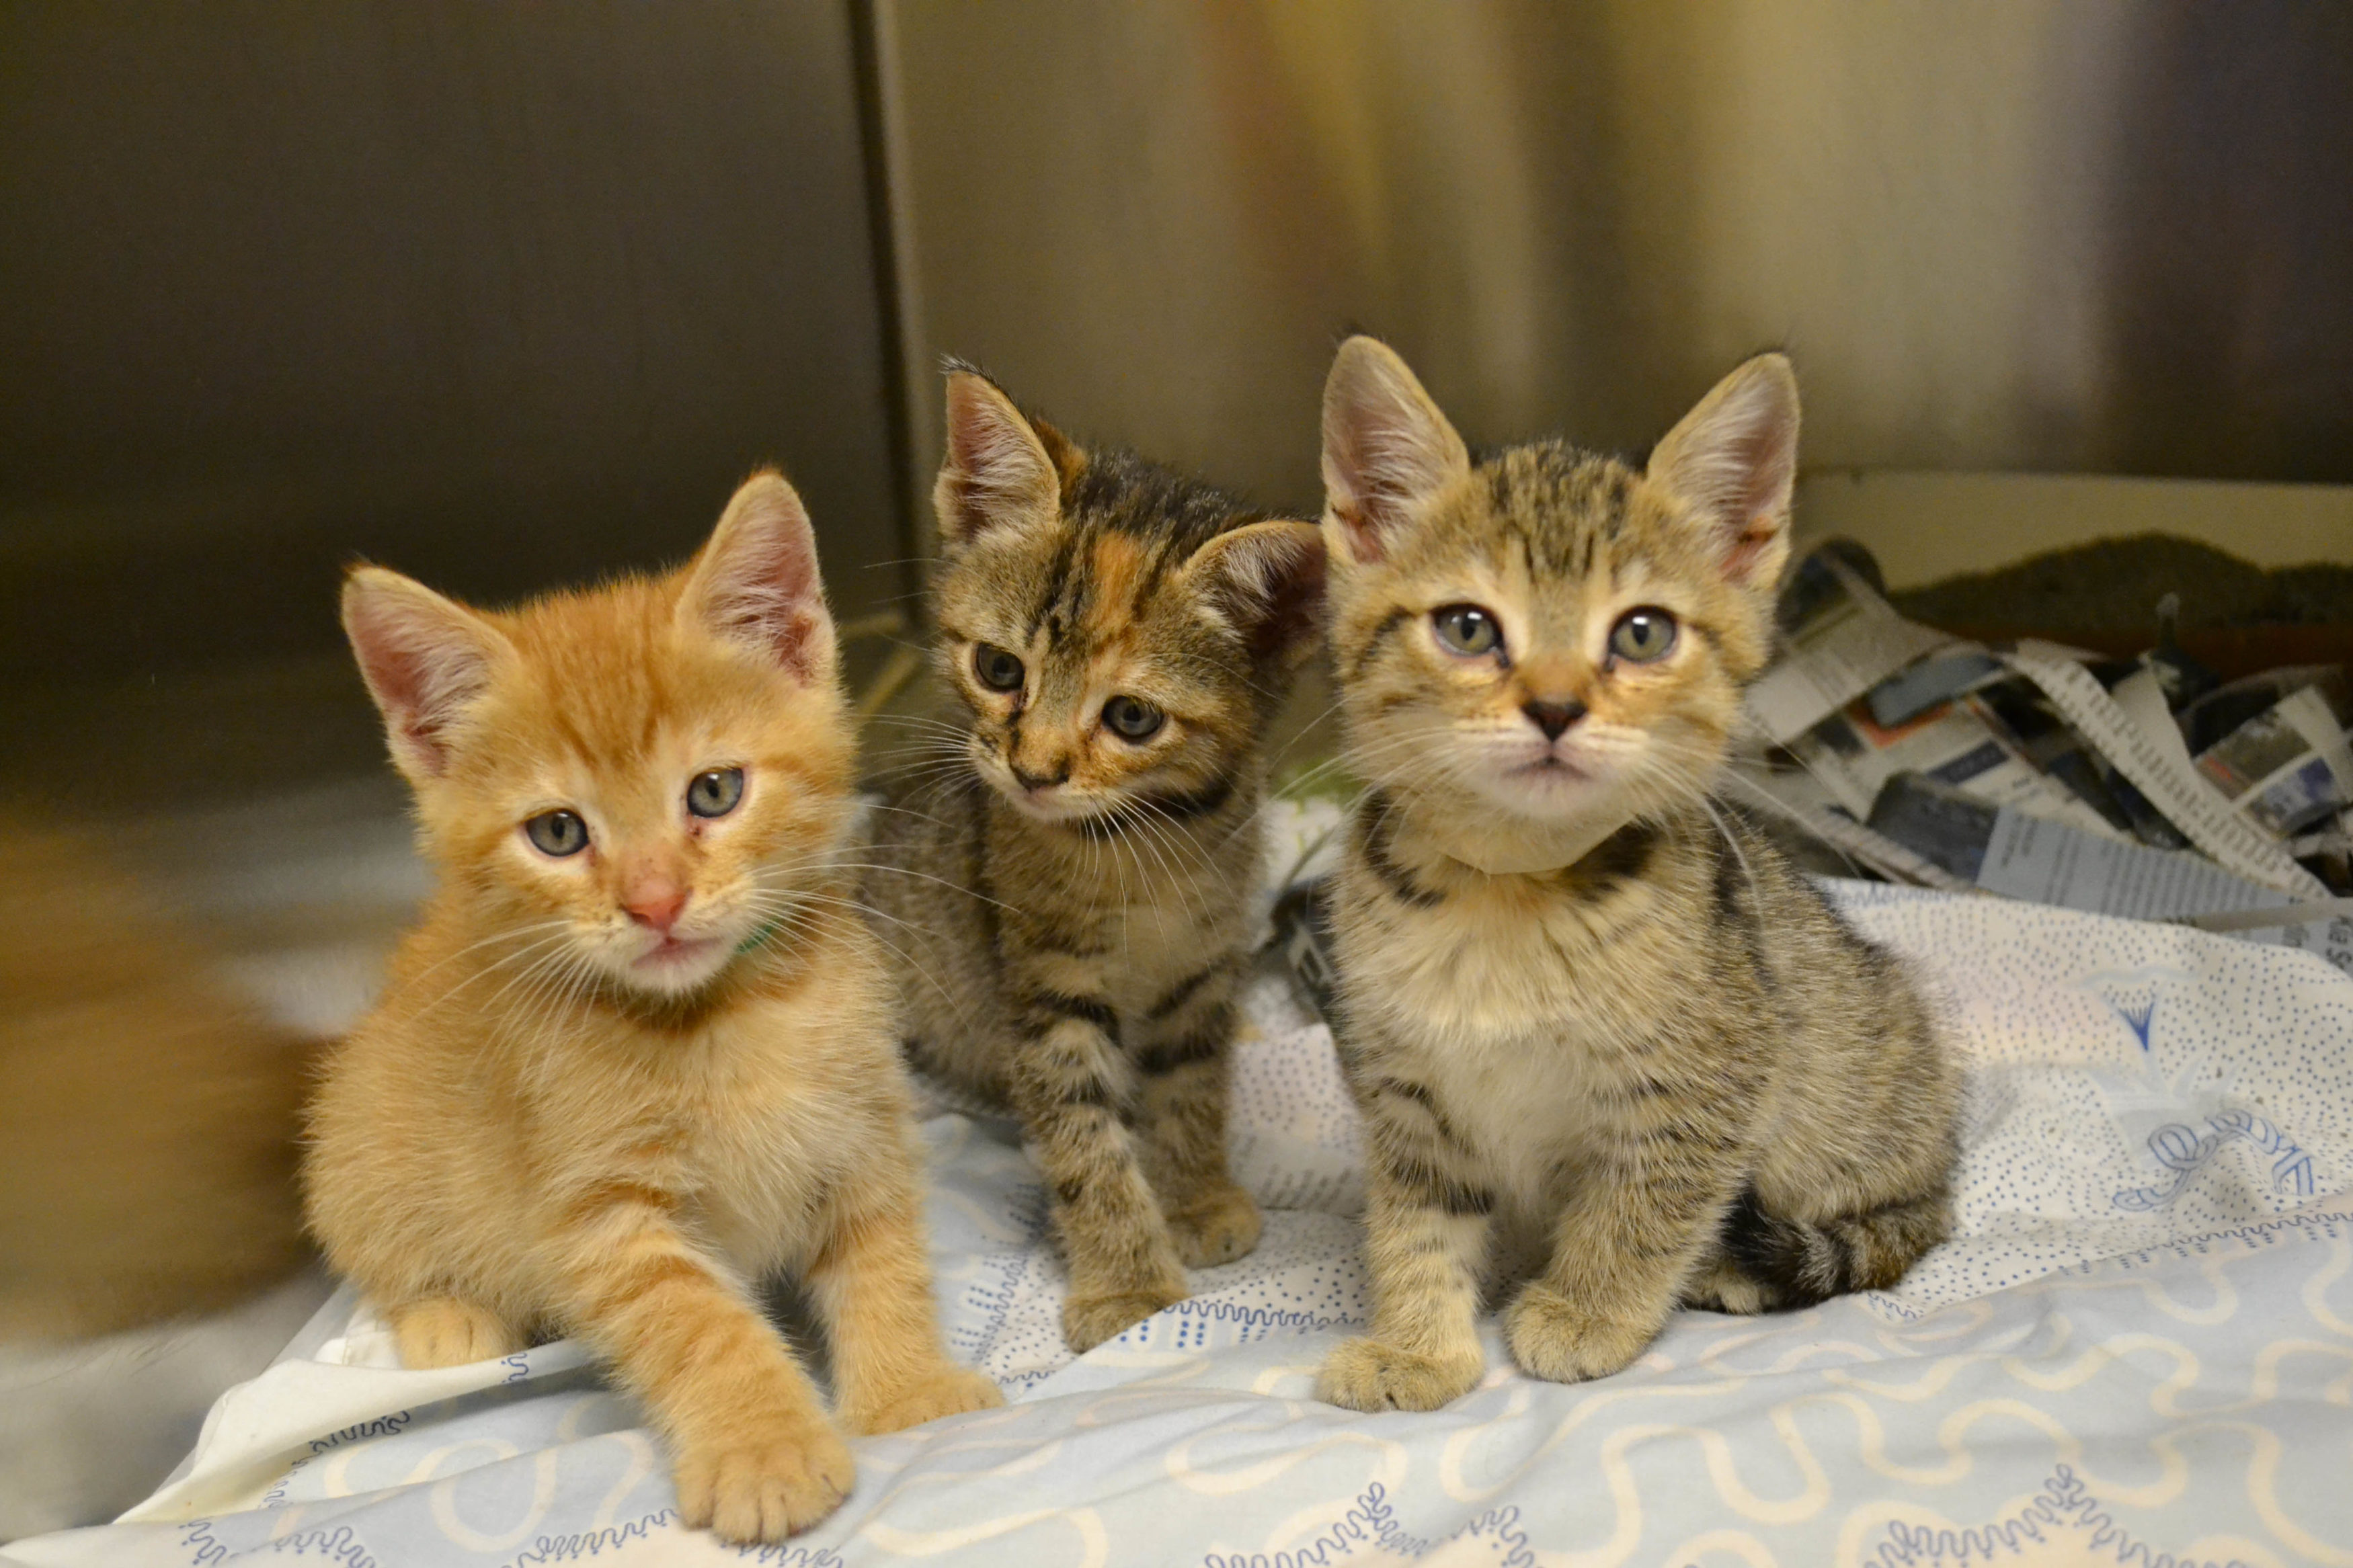 kittens-in-need-of-foster-homes-05072015-5-3500x2333.jpg